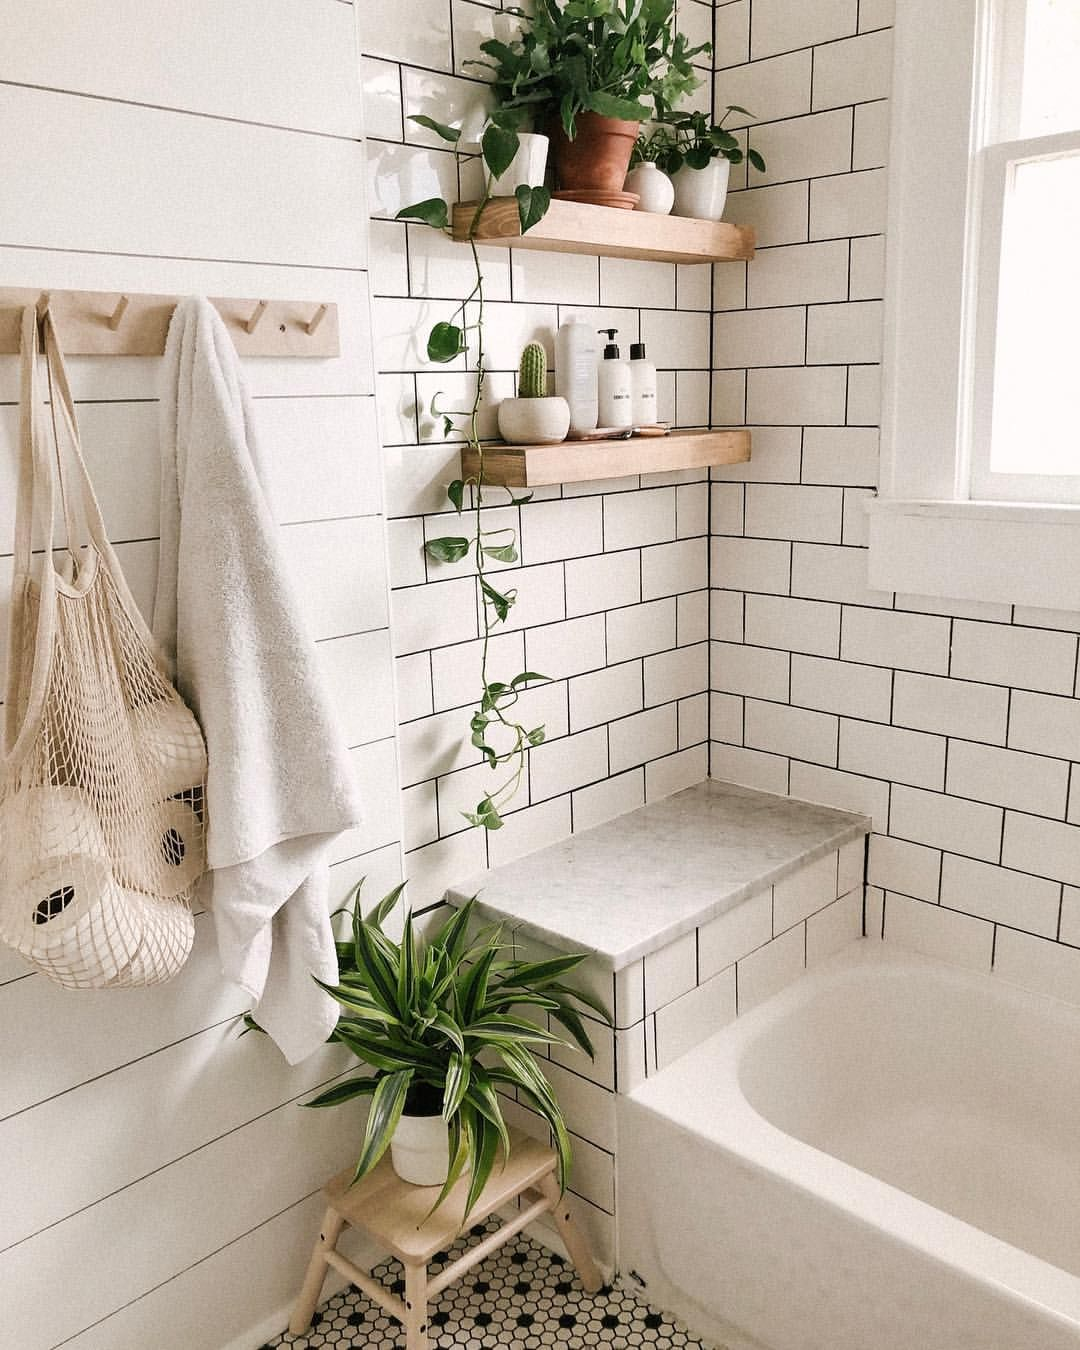 Carla Natalia Thompson On Instagram Our Bathroom Reno Is Finally Coming To An End Real So In 2020 Modern Small Bathrooms Small Bathroom Decor Modern Vintage Bathroom